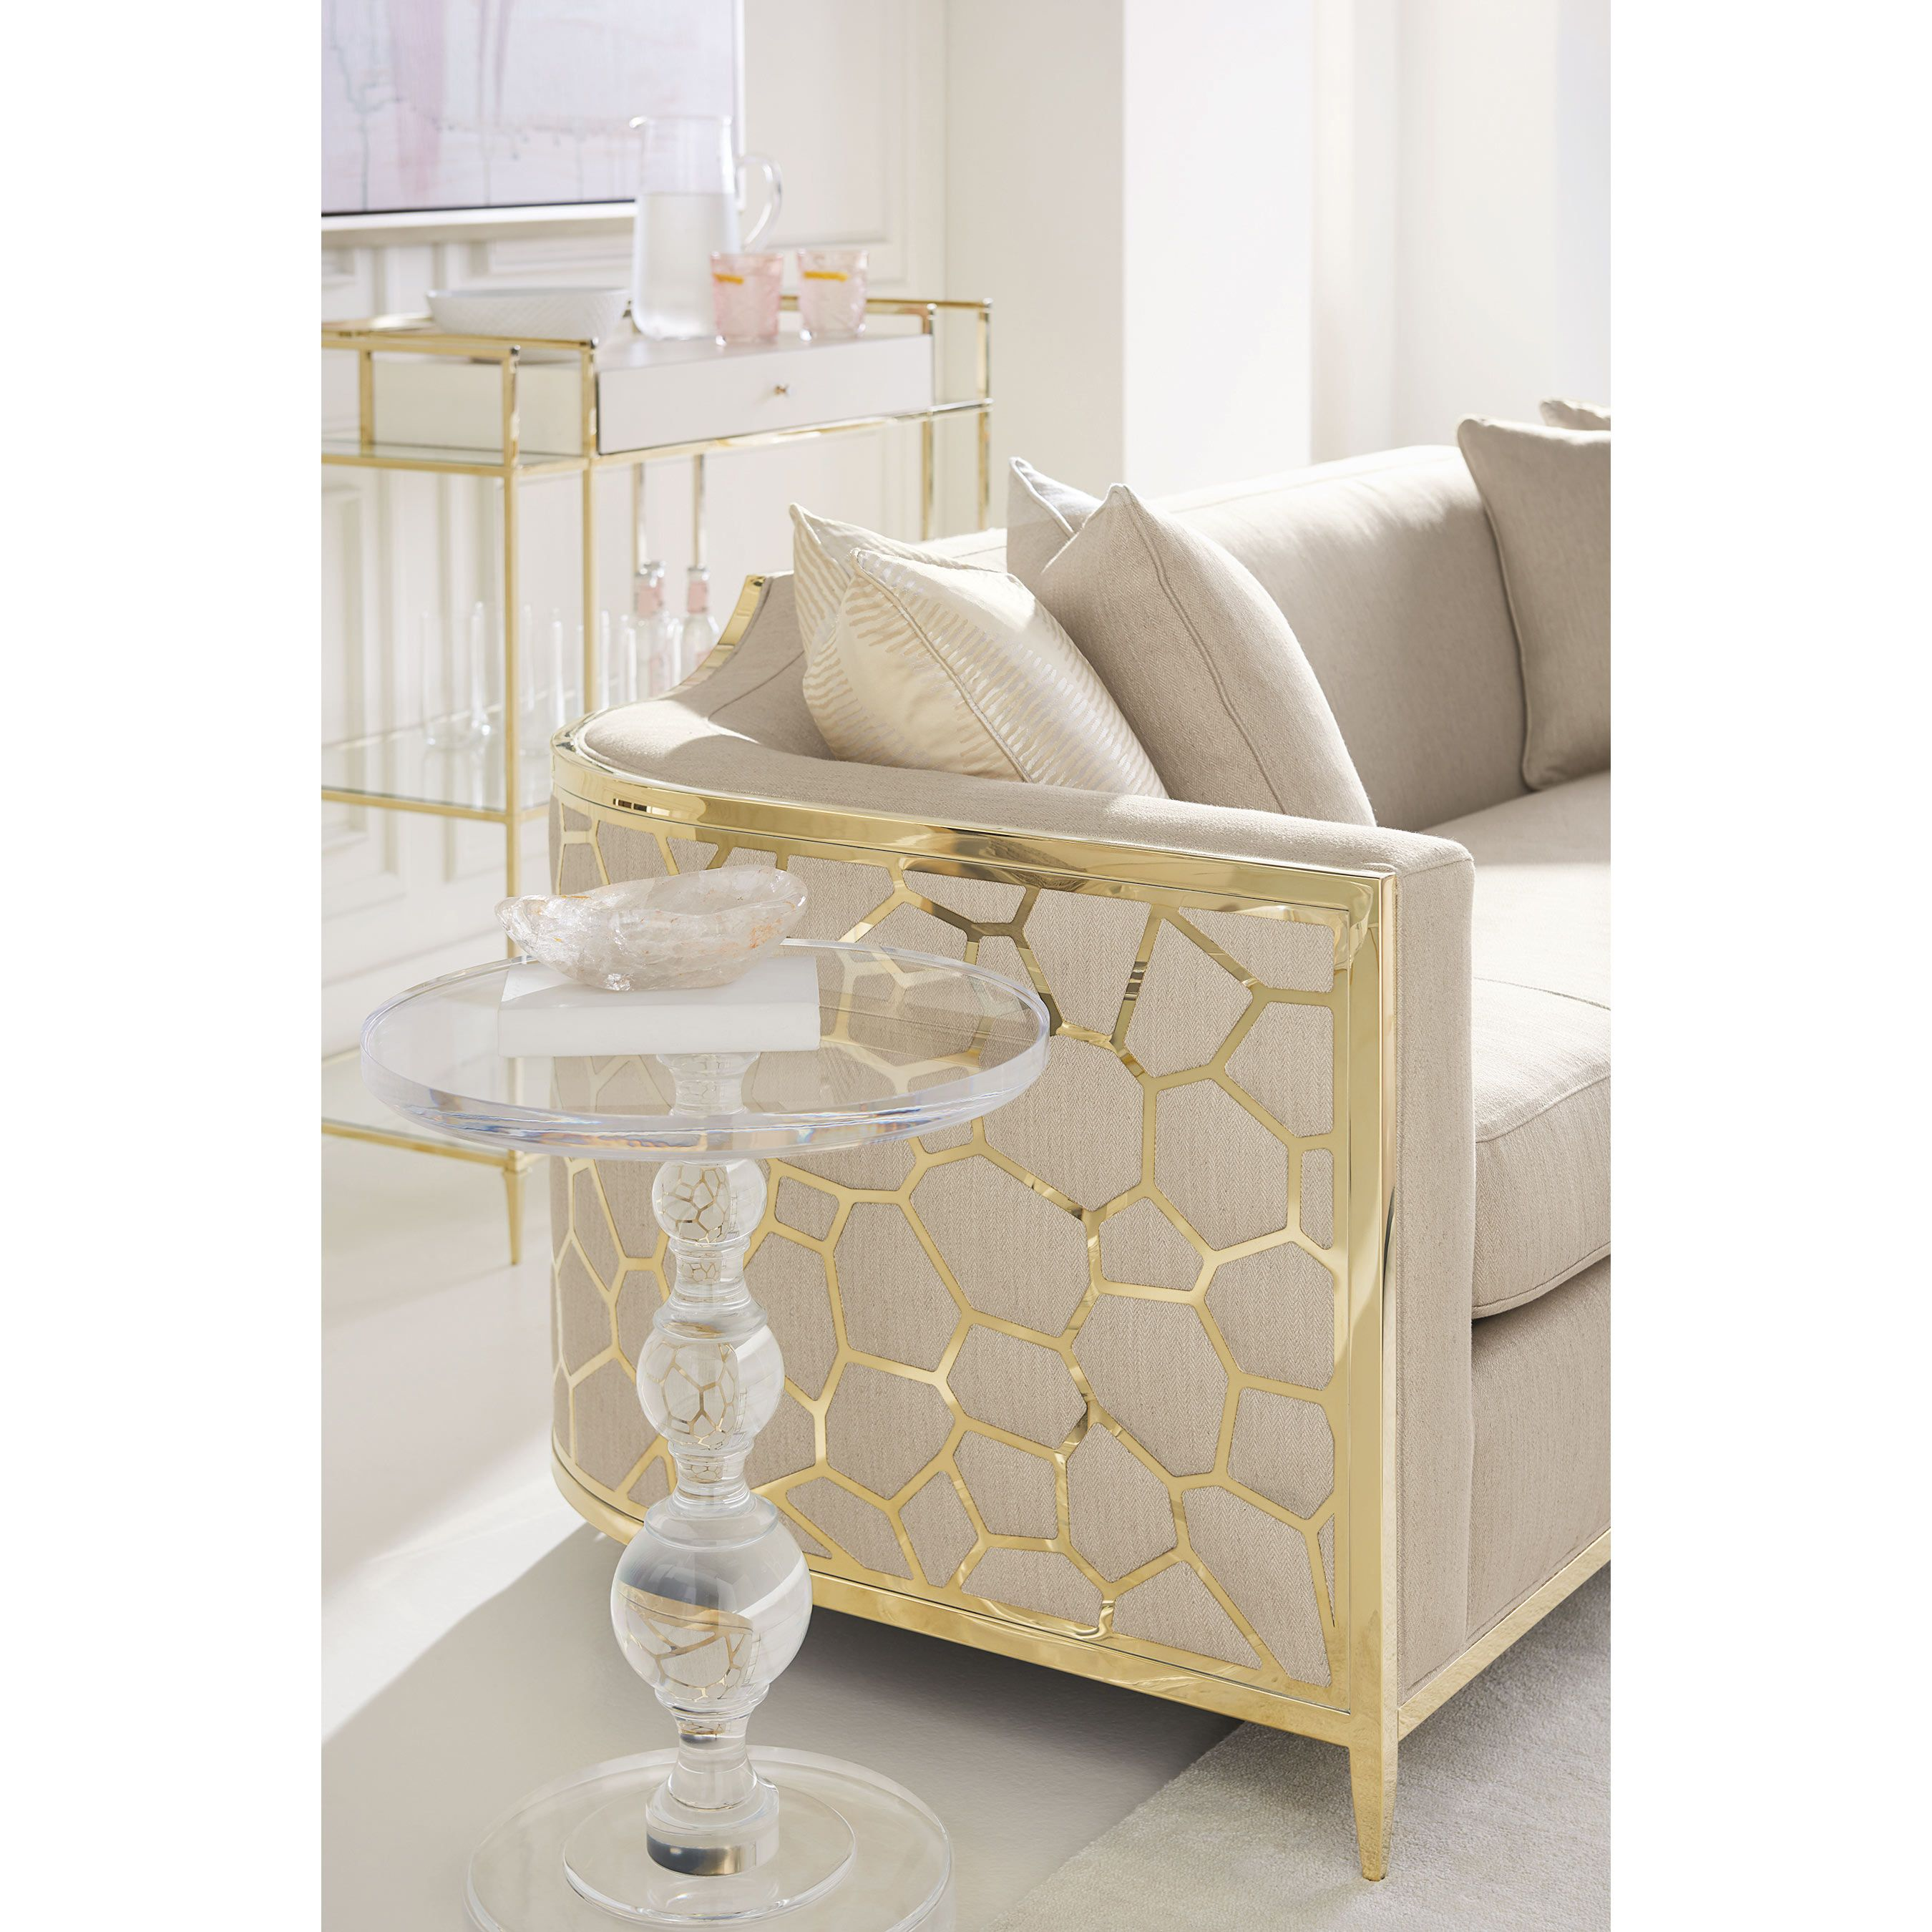 Caracole Ice Breaker Modern Classic Beige Upholstered Gold Metal Wrapped Bench Cushion Sofa In 2020 White Furniture Living Room Living Room Designs Living Room Decor Apartment